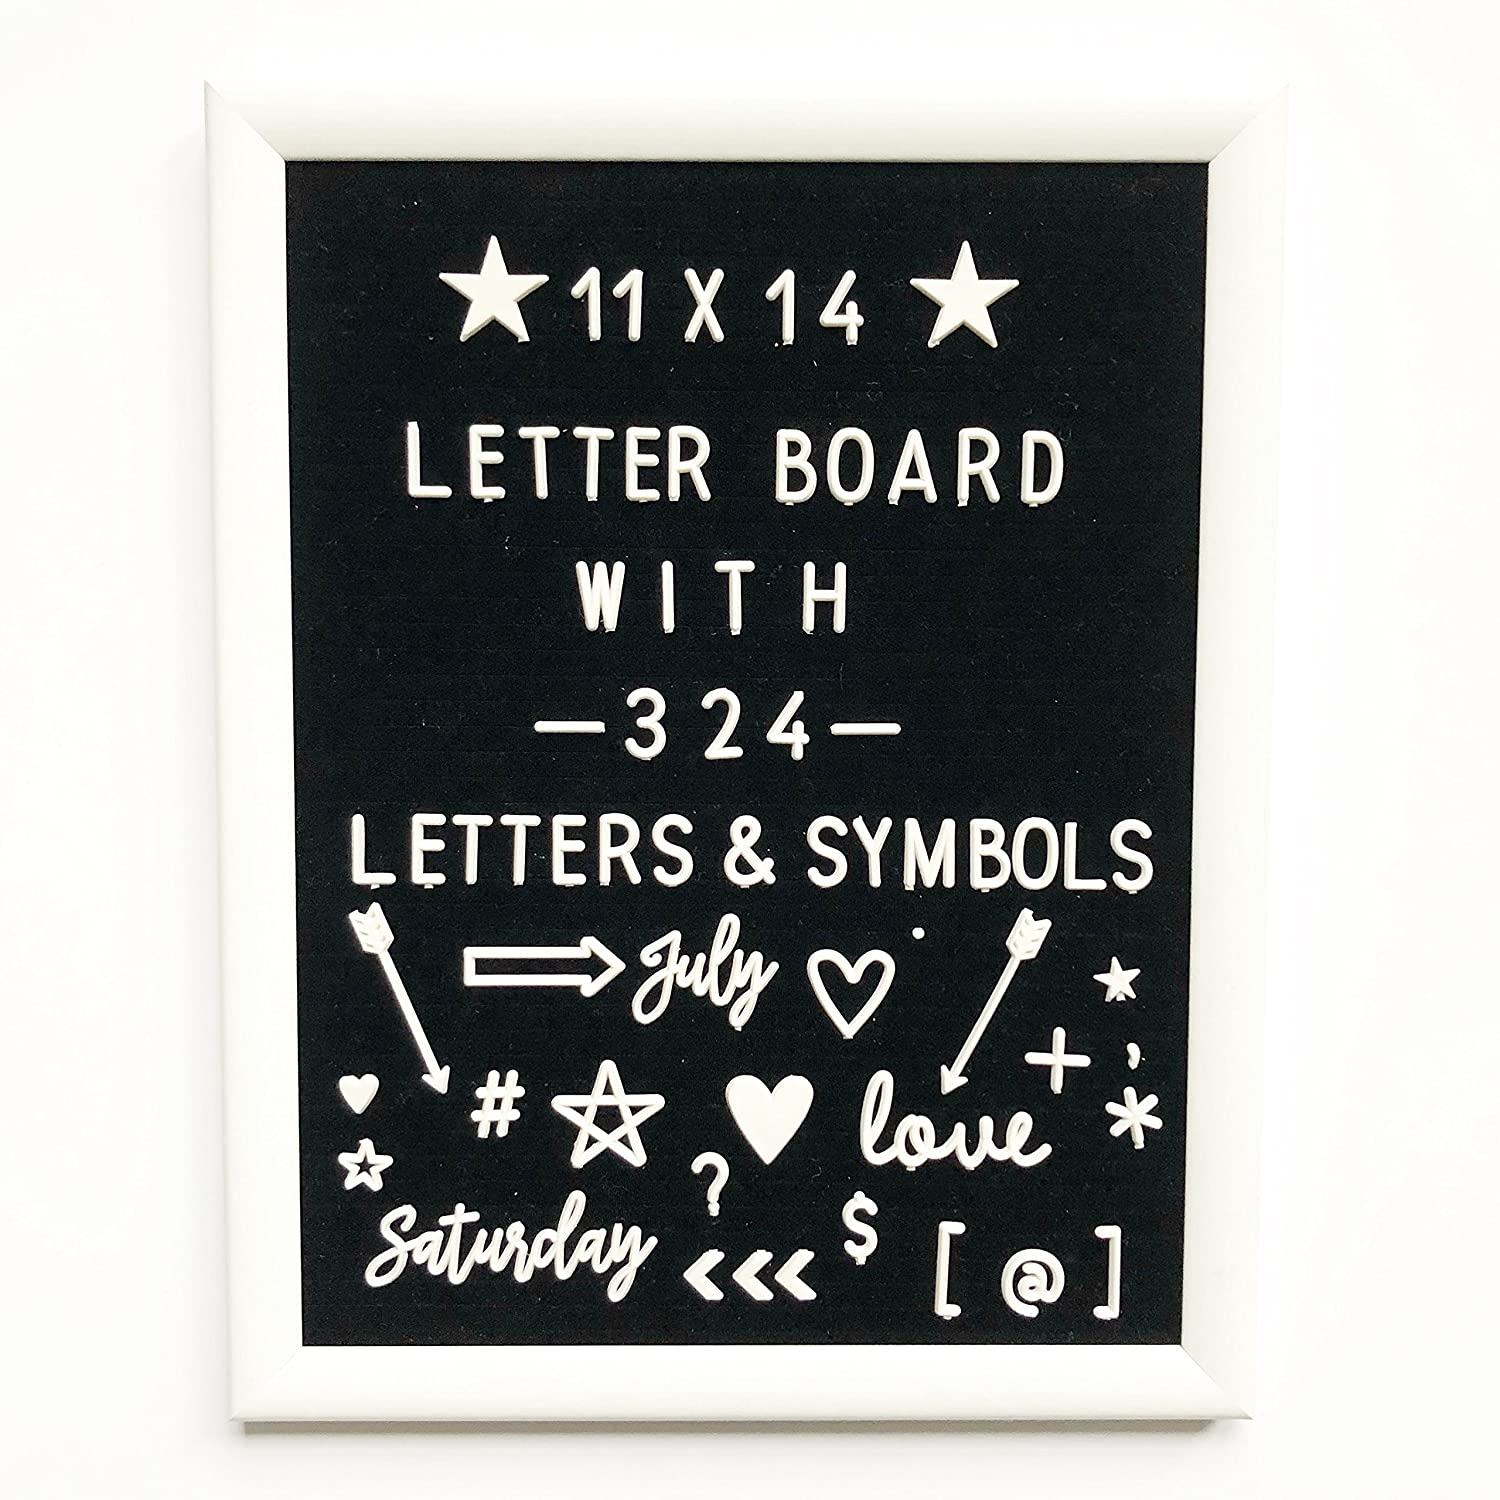 11 X 14 Changeable Letter Board With White Wood Frame, Black Felt Message Sign, Vintage Classroom Announcement Word Bulletin Board + 324 Unique Plastic Characters Set For Menu Or Office Quote Signs by Lemonberry St.